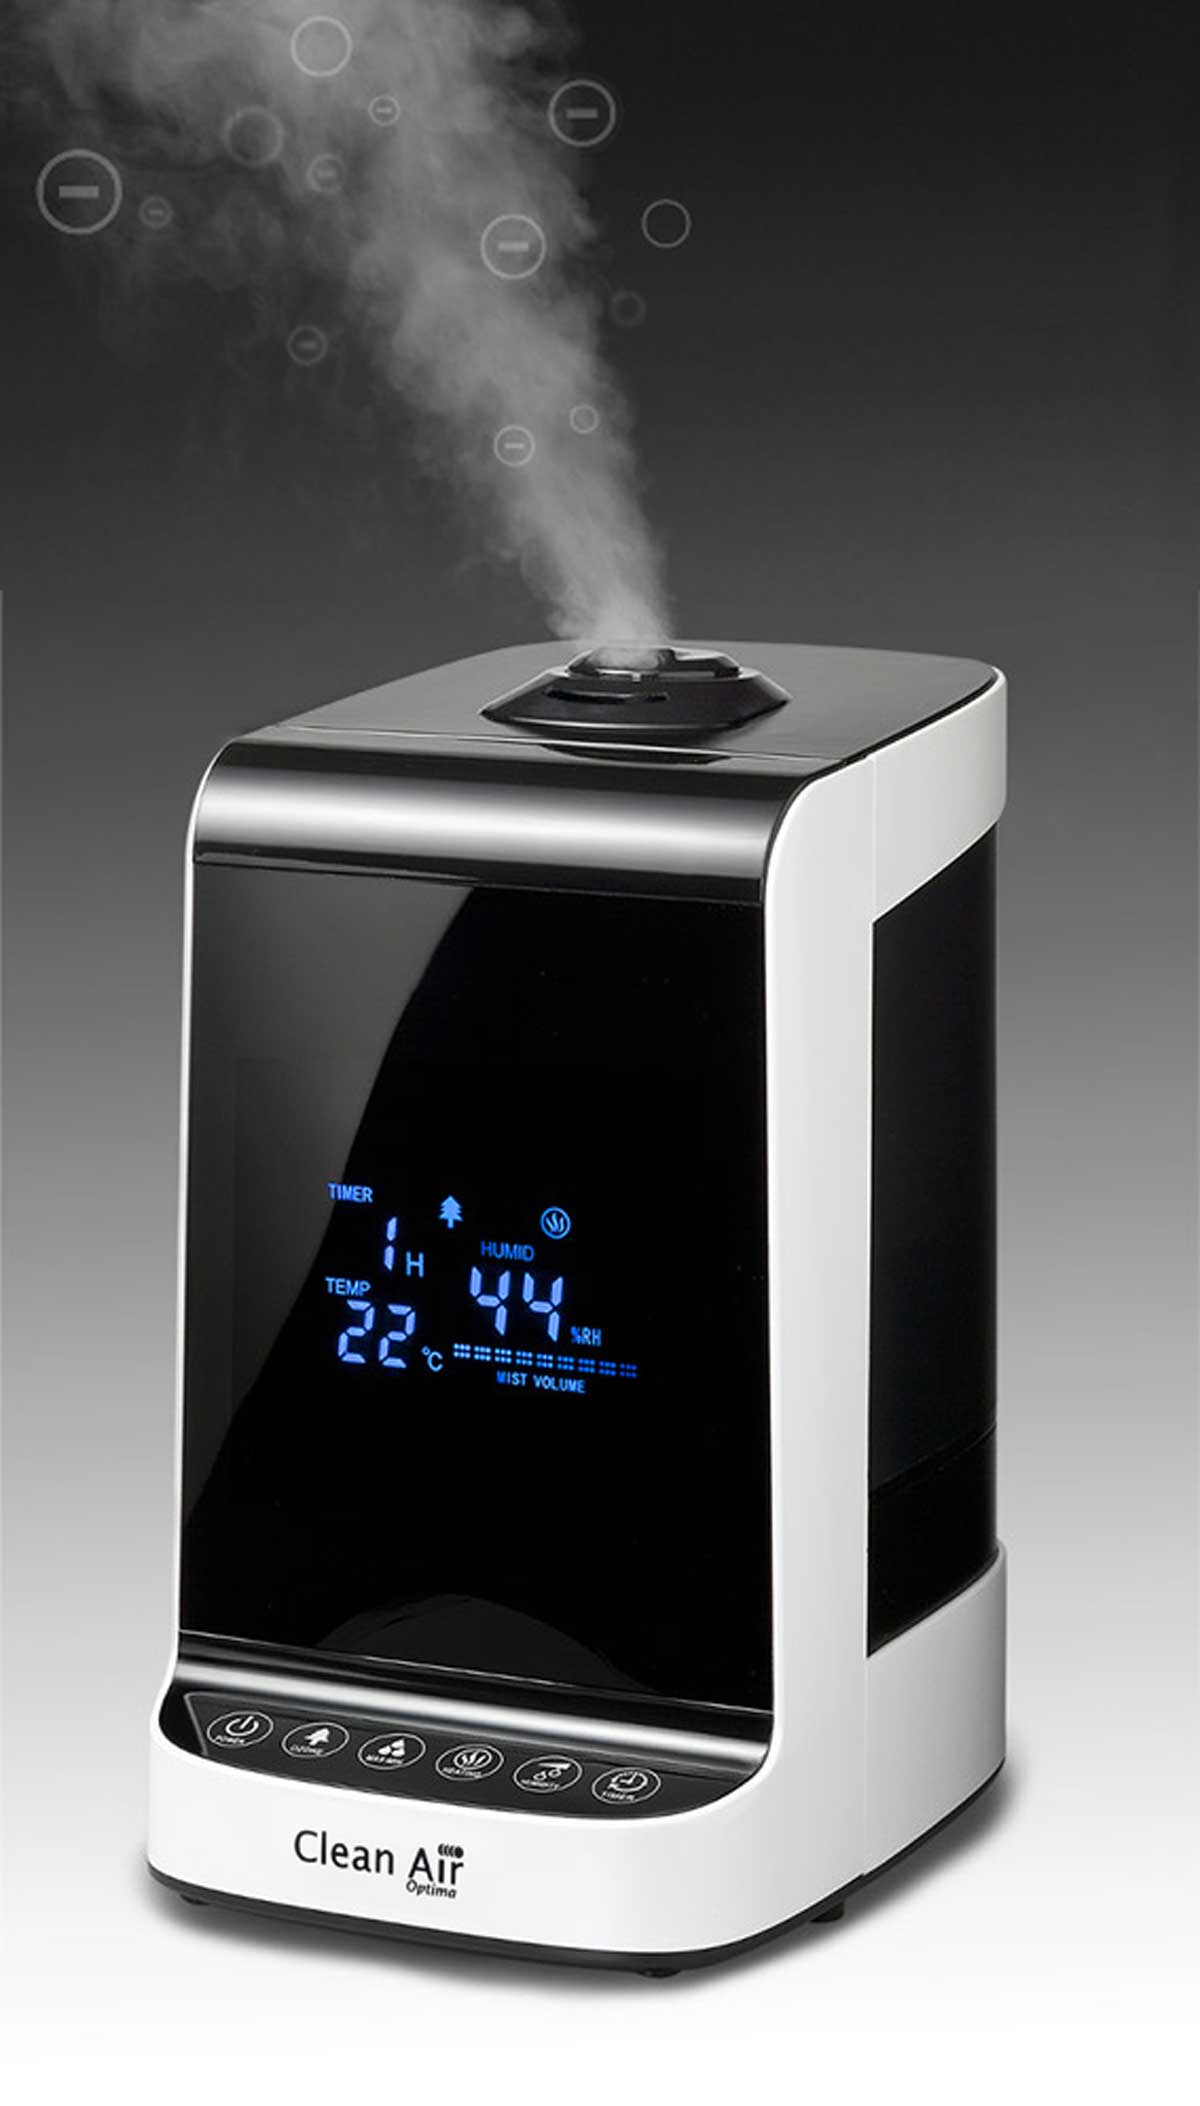 Humidificador de aire Clean Air Optim CA-605 panel de accionamiento